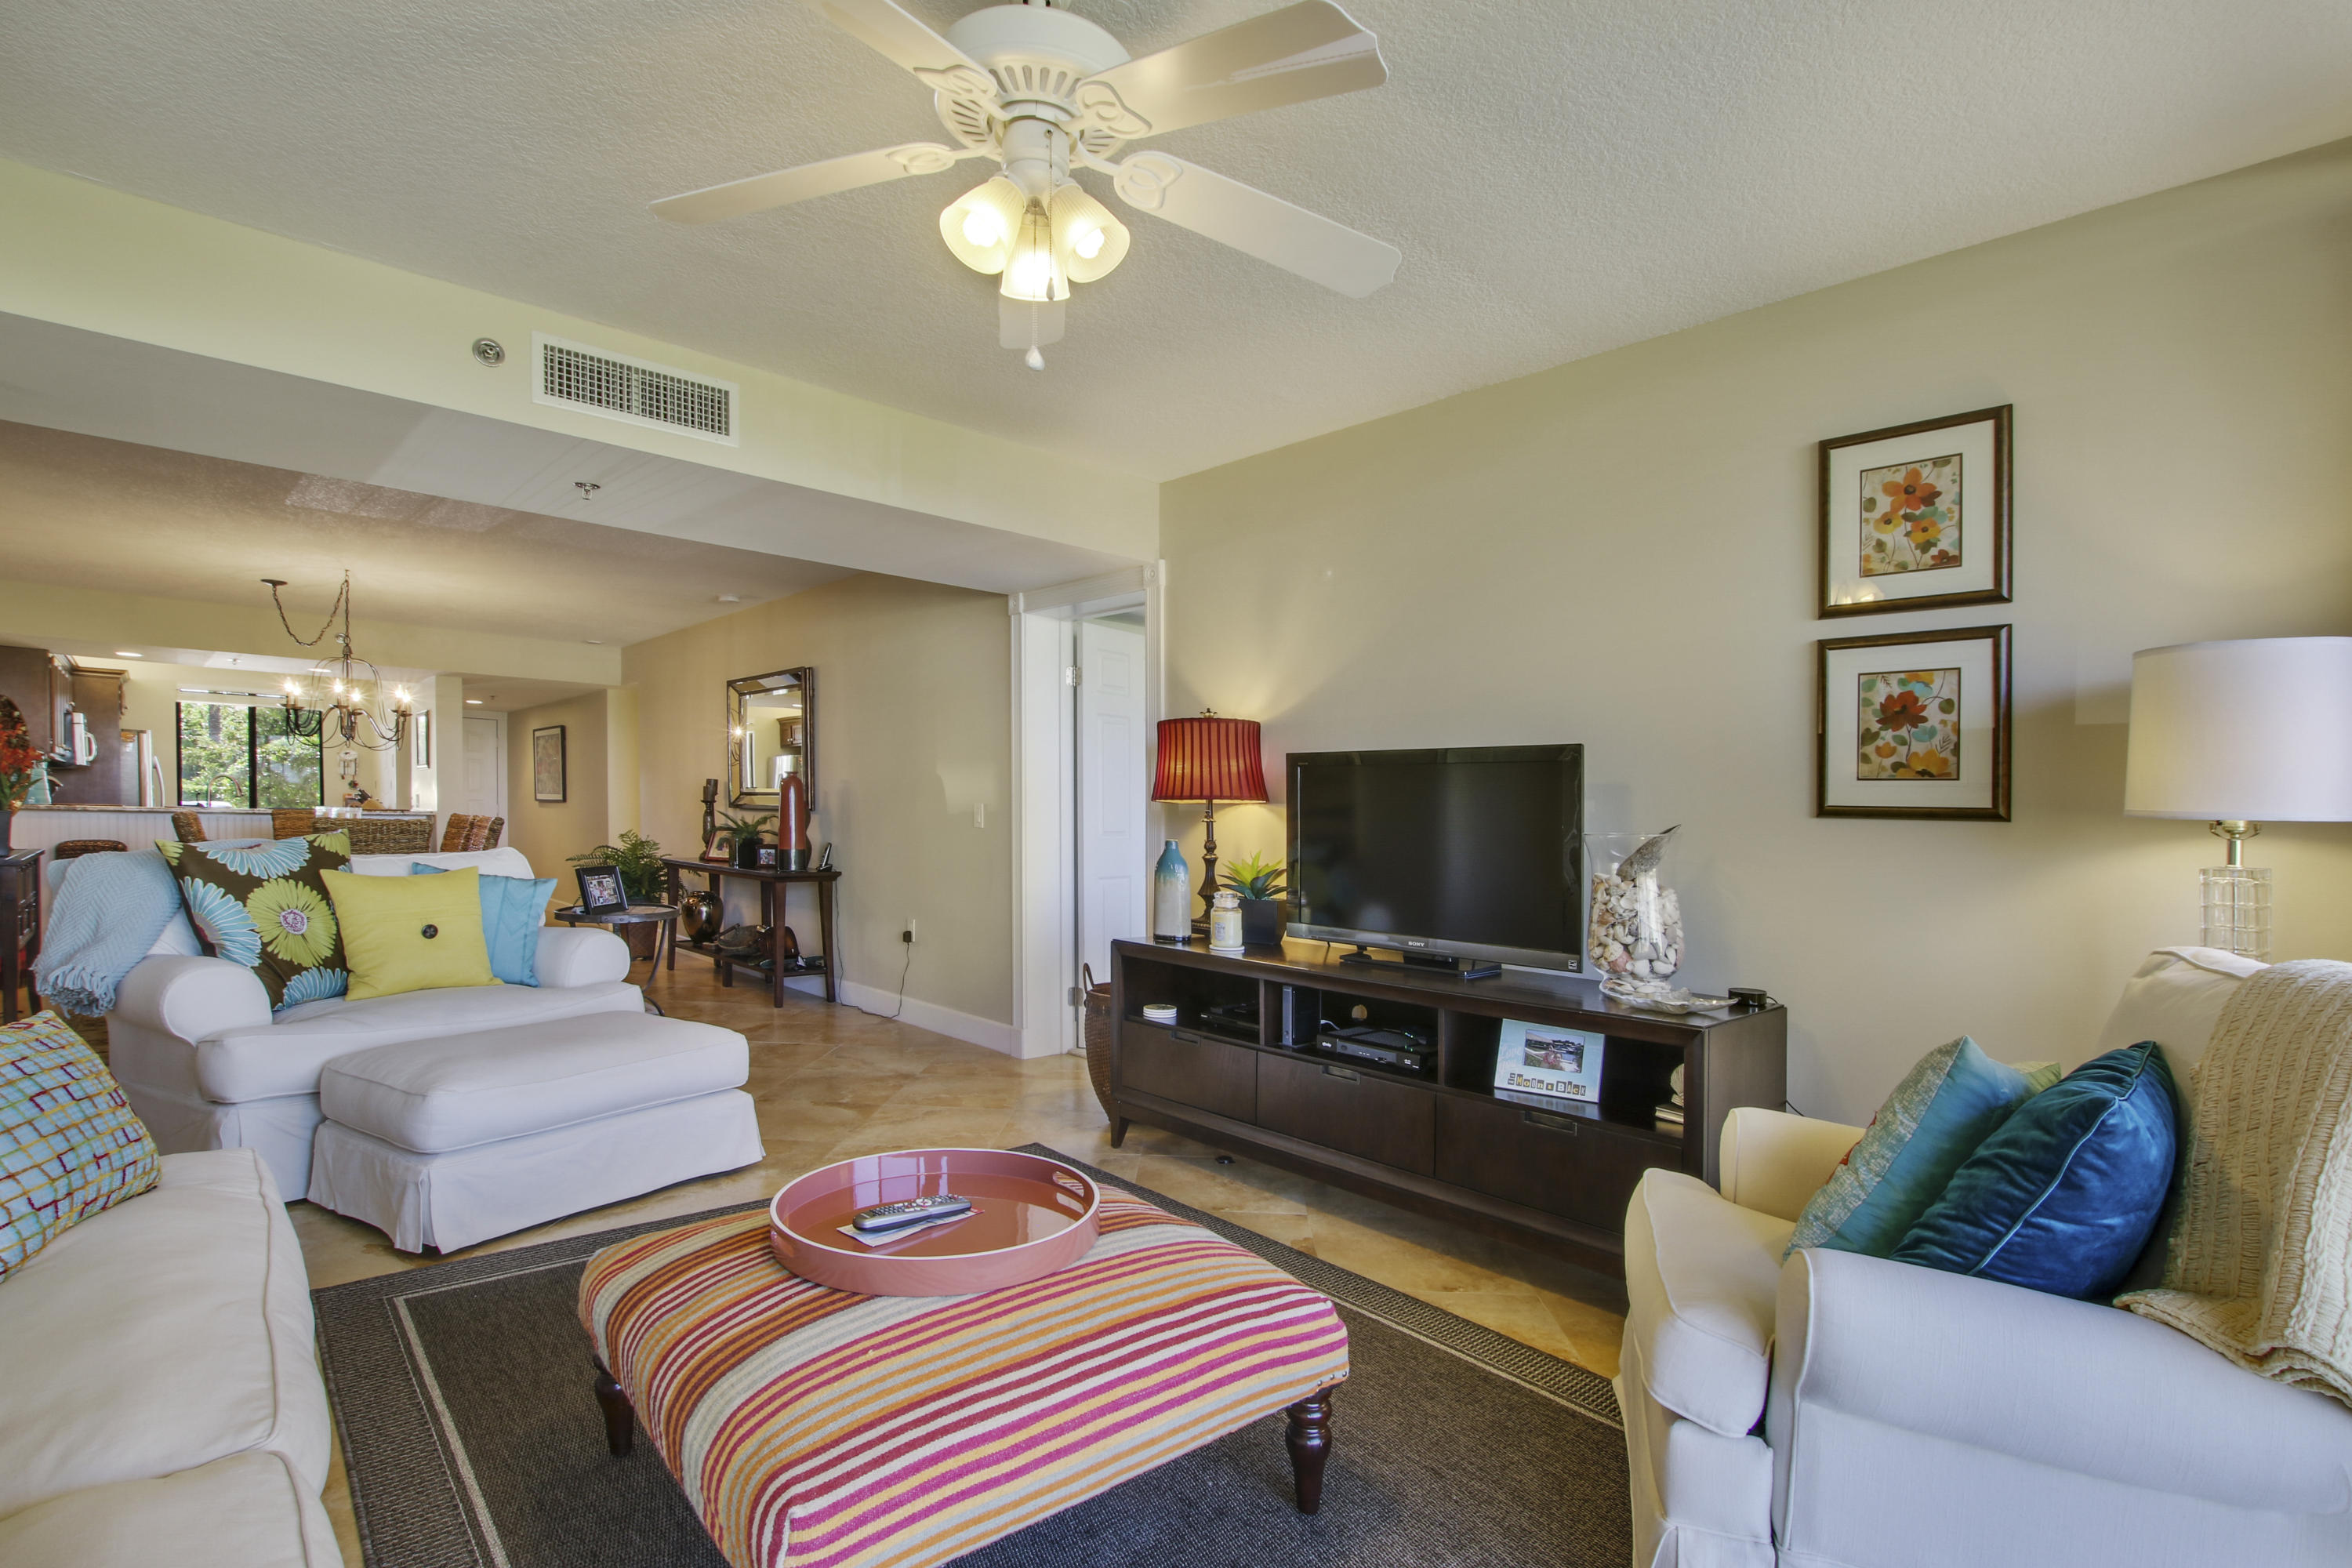 COND 4 OF THE OCEAN AT THE BLUFFS SOUTH UNIT 101